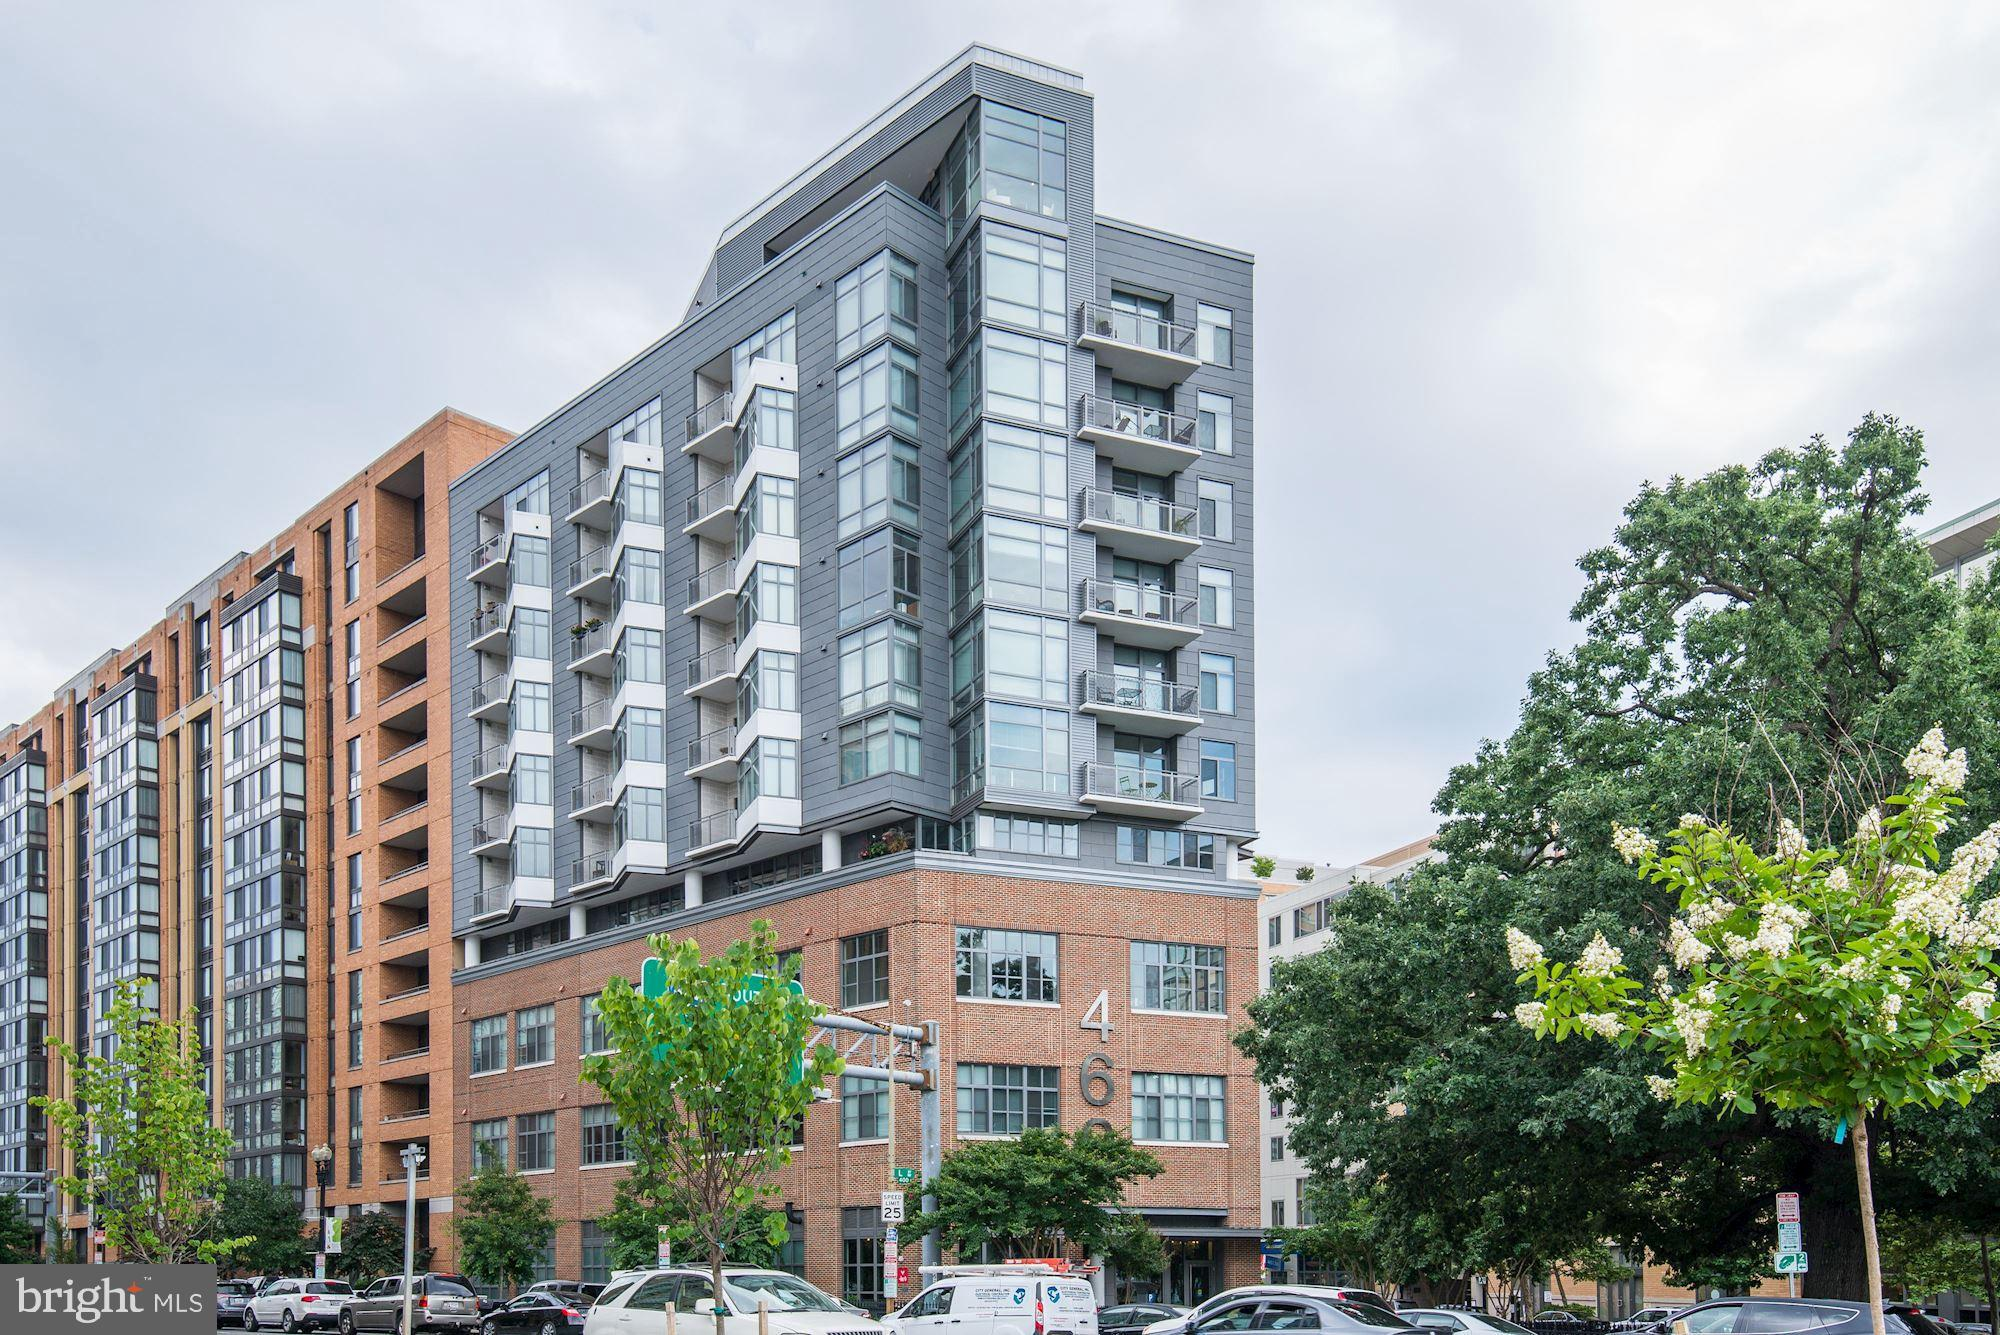 Welcome to 460 New York Avenue NW. This a large one bedroom and one full bath with a private balcony, garage parking and extra storage. This corner unit is located on the 8th floor with dramatic floor to ceiling windows, and freshly painted with several improvements including new water heater (9/2018), Hydroviv water filters, new shower head, ELFA custom closet organizers in entry and bedroom closet, updated light fixtures, outlets, and switches. As part of the 460NYA Condos amenities, VIDA Fitness will offer discounted membership and also there's laundry pick-up/delivery service. Great entertaining space in unit as well as a gorgeous rooftop with amazing views!Walk Score of 96 out of 100. This location is a Walker~s Paradise so daily errands do not require a car.460 New York Avenue Northwest is a six minute walk from the  Green Line and the Yellow Line at the MT VERNON SQ/7TH ST-CONVENTION CENTER stop and the Red Line is at the Gallery Place/Chinatown stop.